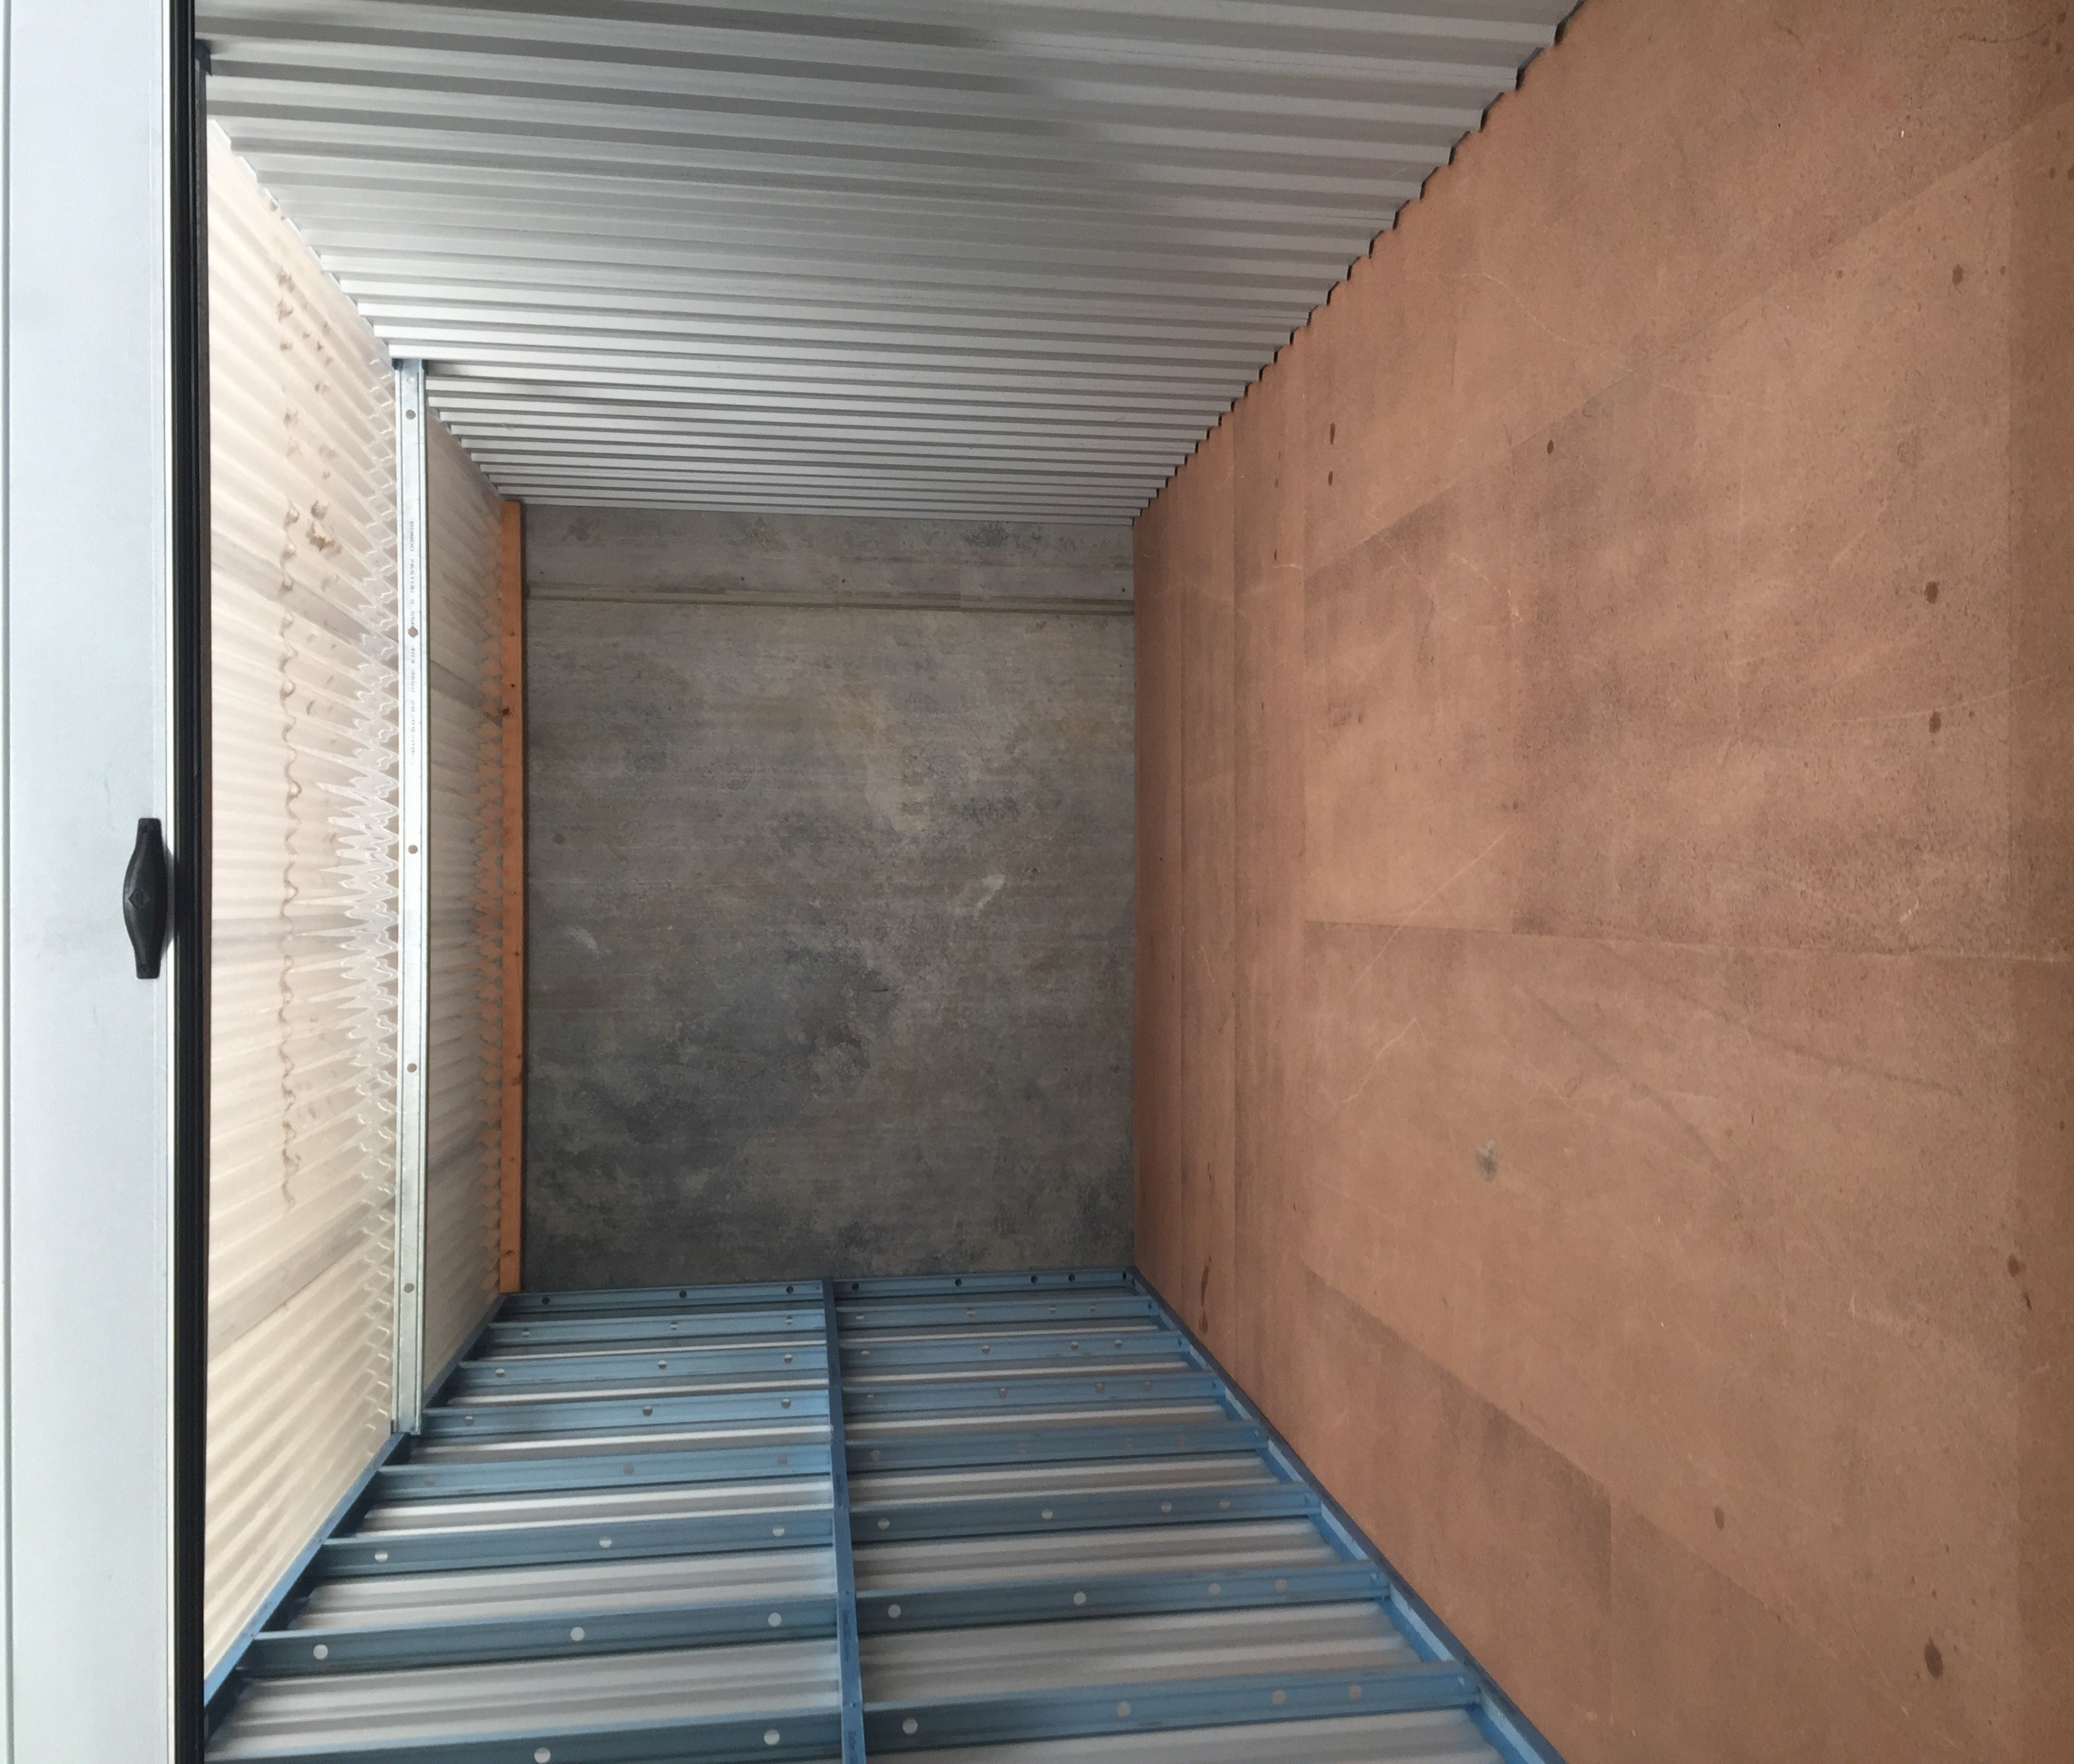 Large Unit 6 x 3 x 2.4 metres 43.2 cubic metres & Units u0026 Storage - That Big Self Storage Place Wyong Central Coast